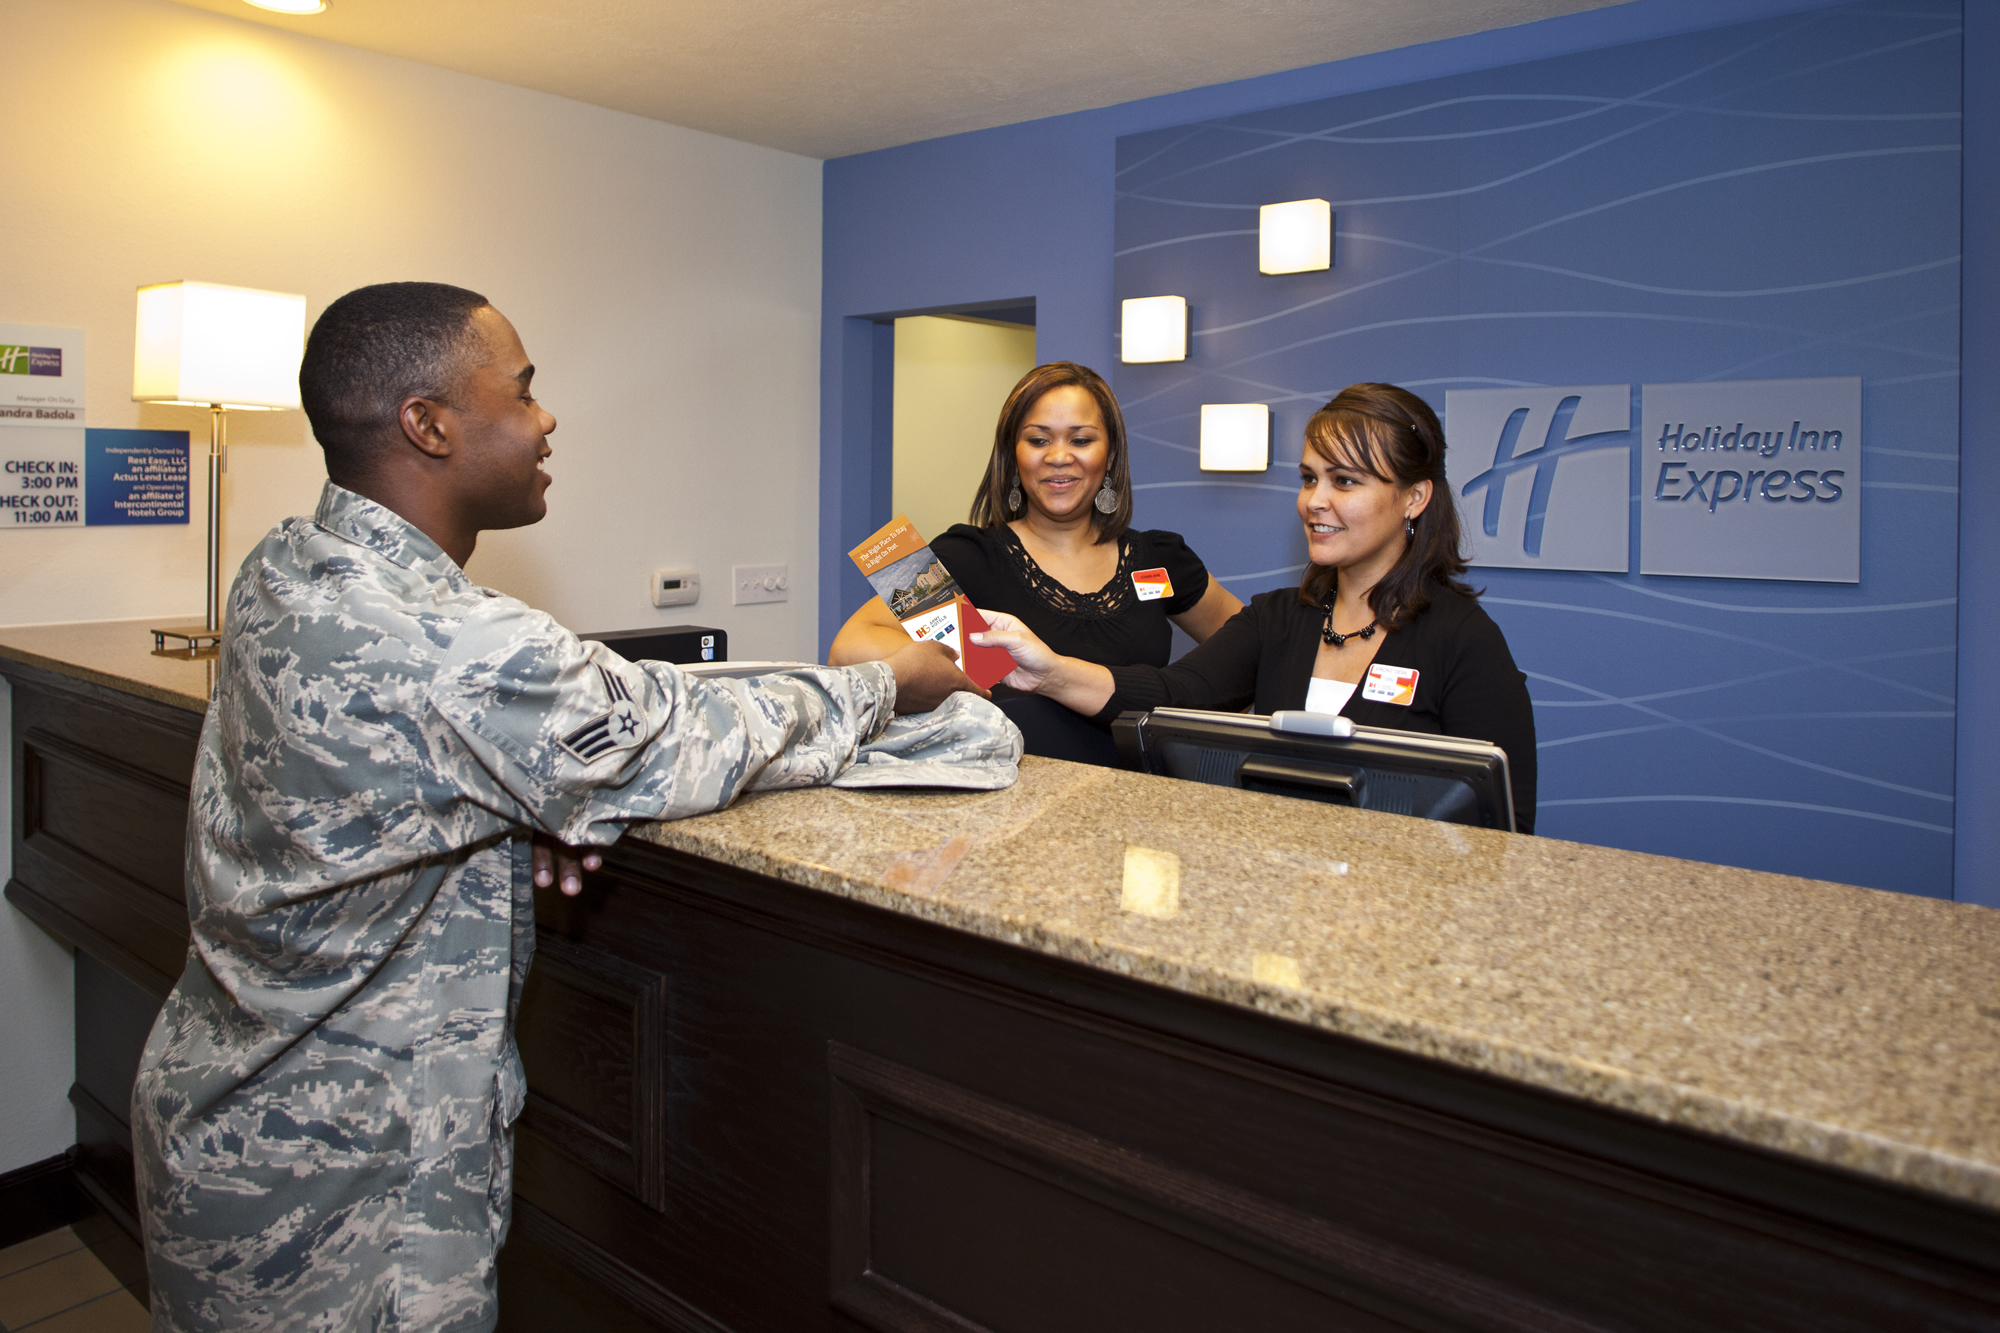 Intercontinental Hotels Group Ociation Of The United States Army Holiday Inn Express